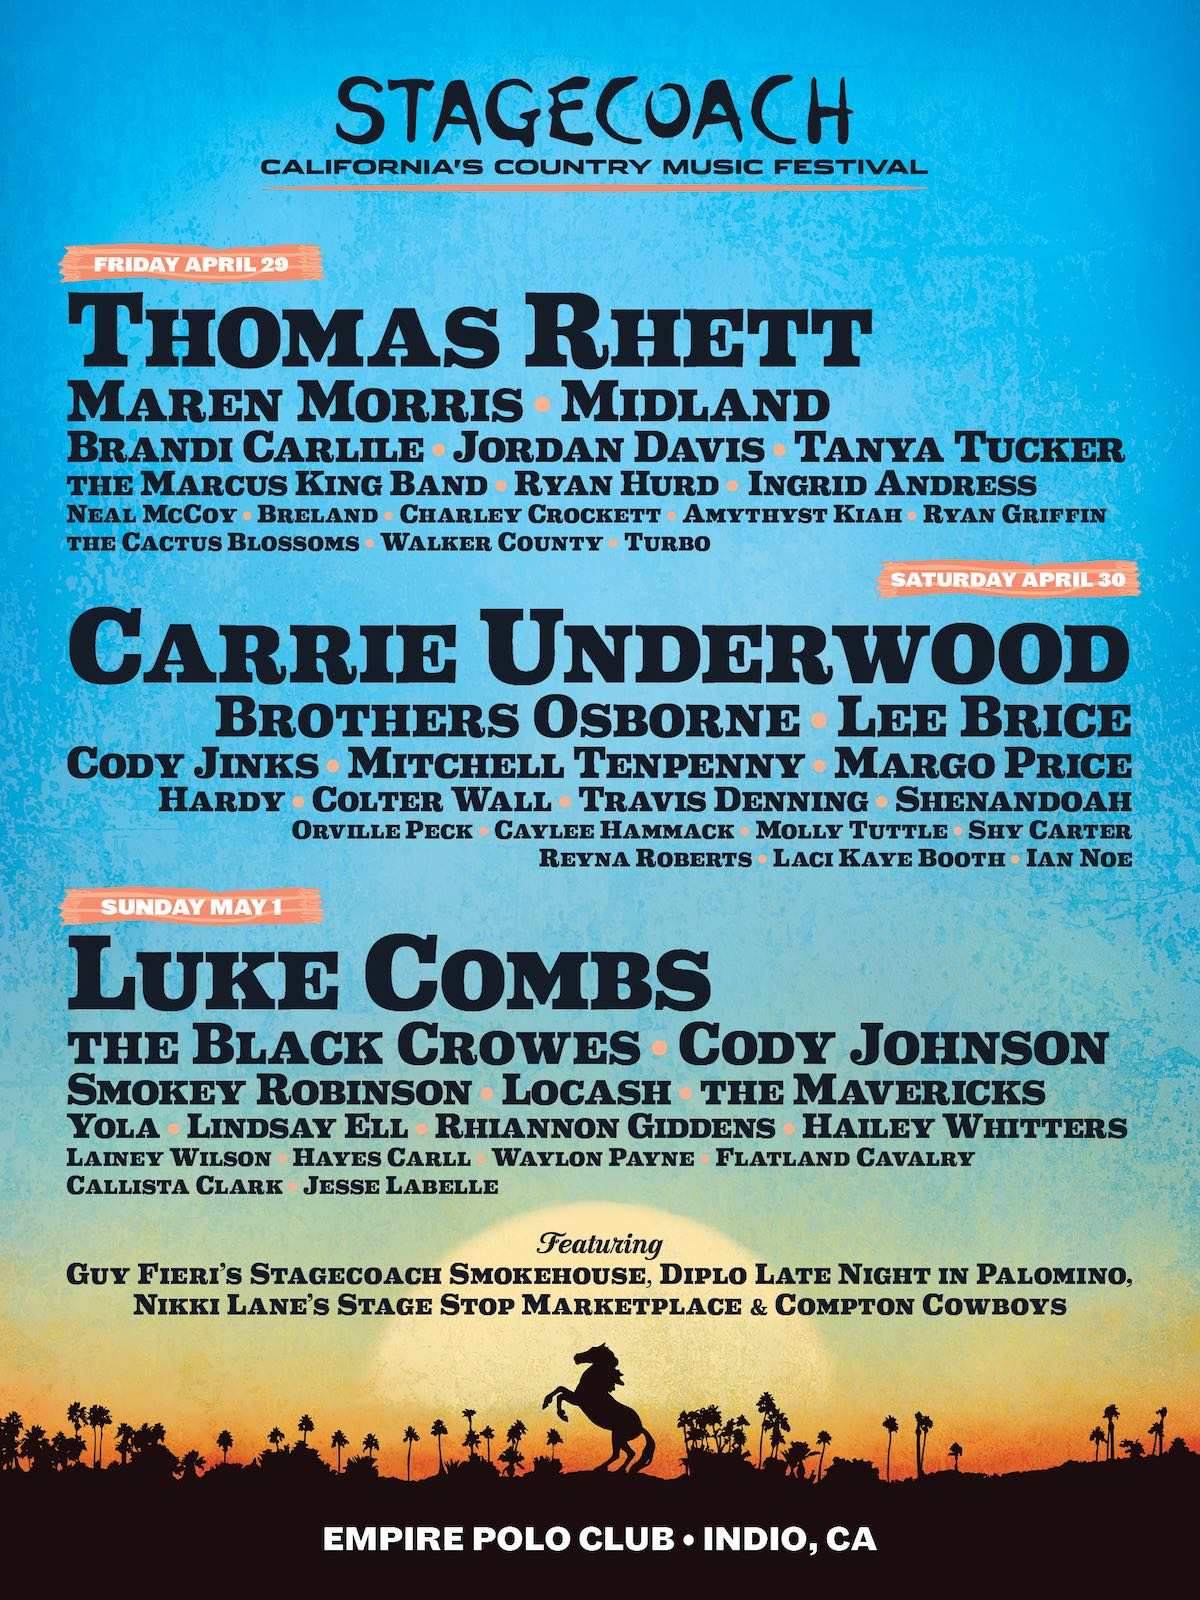 Stagecoach - California Country Music Festival 2022